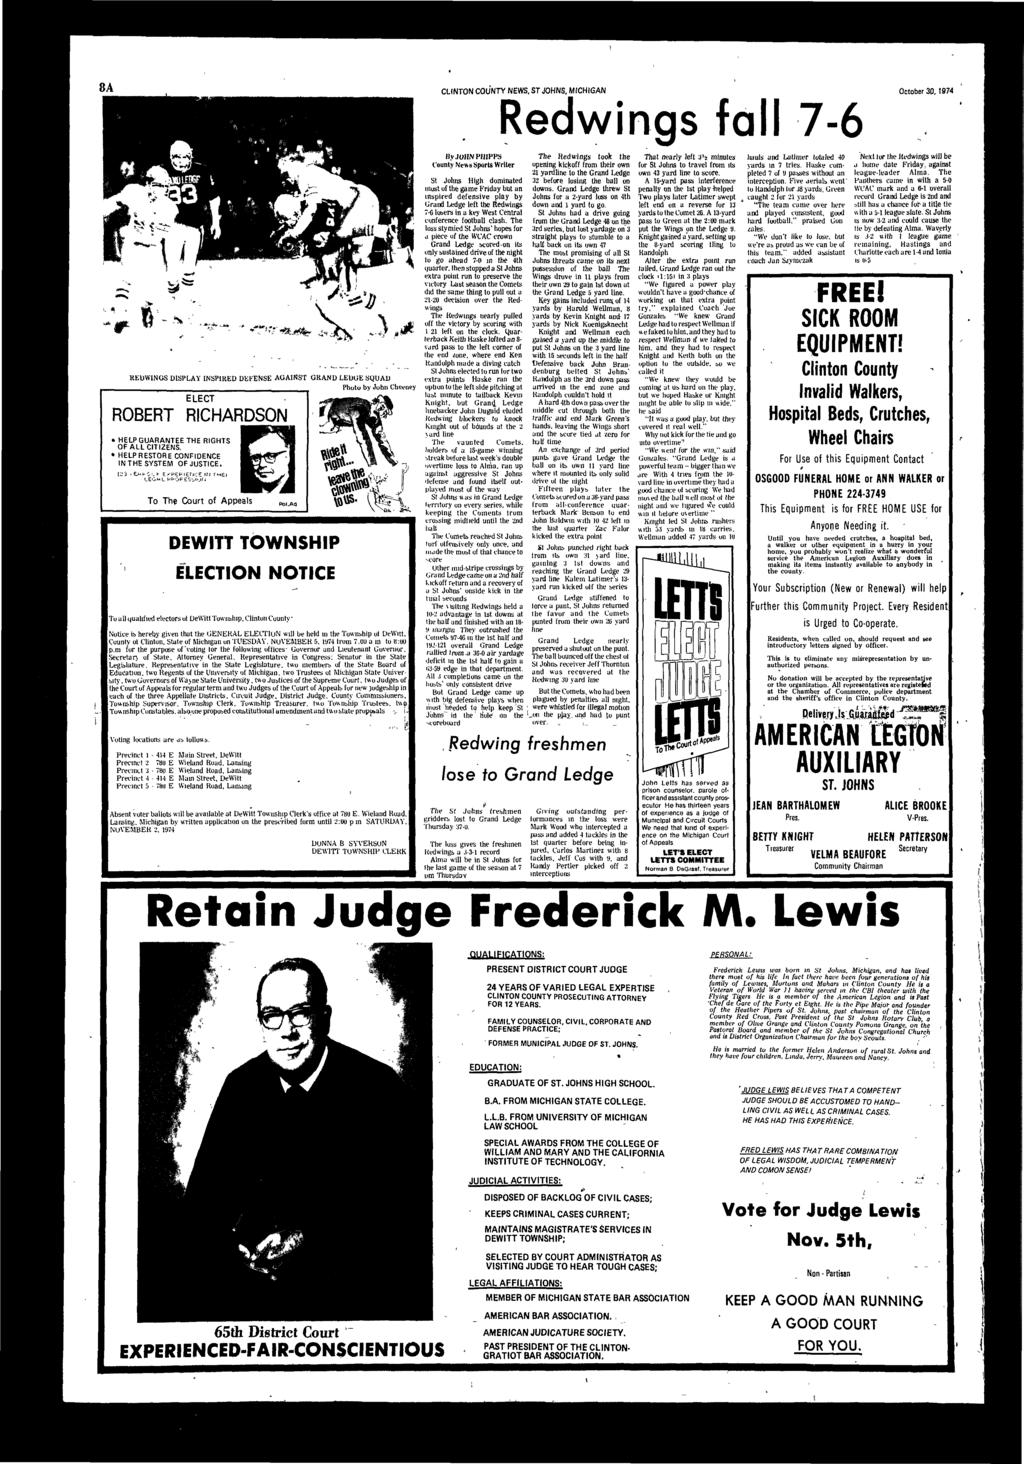 CLINTON COUNTY NEWS, ST JOHNS, MICHIGAN October 30,1974 Redwings fll 7-6 **»* -**-*«.^tojk,m.